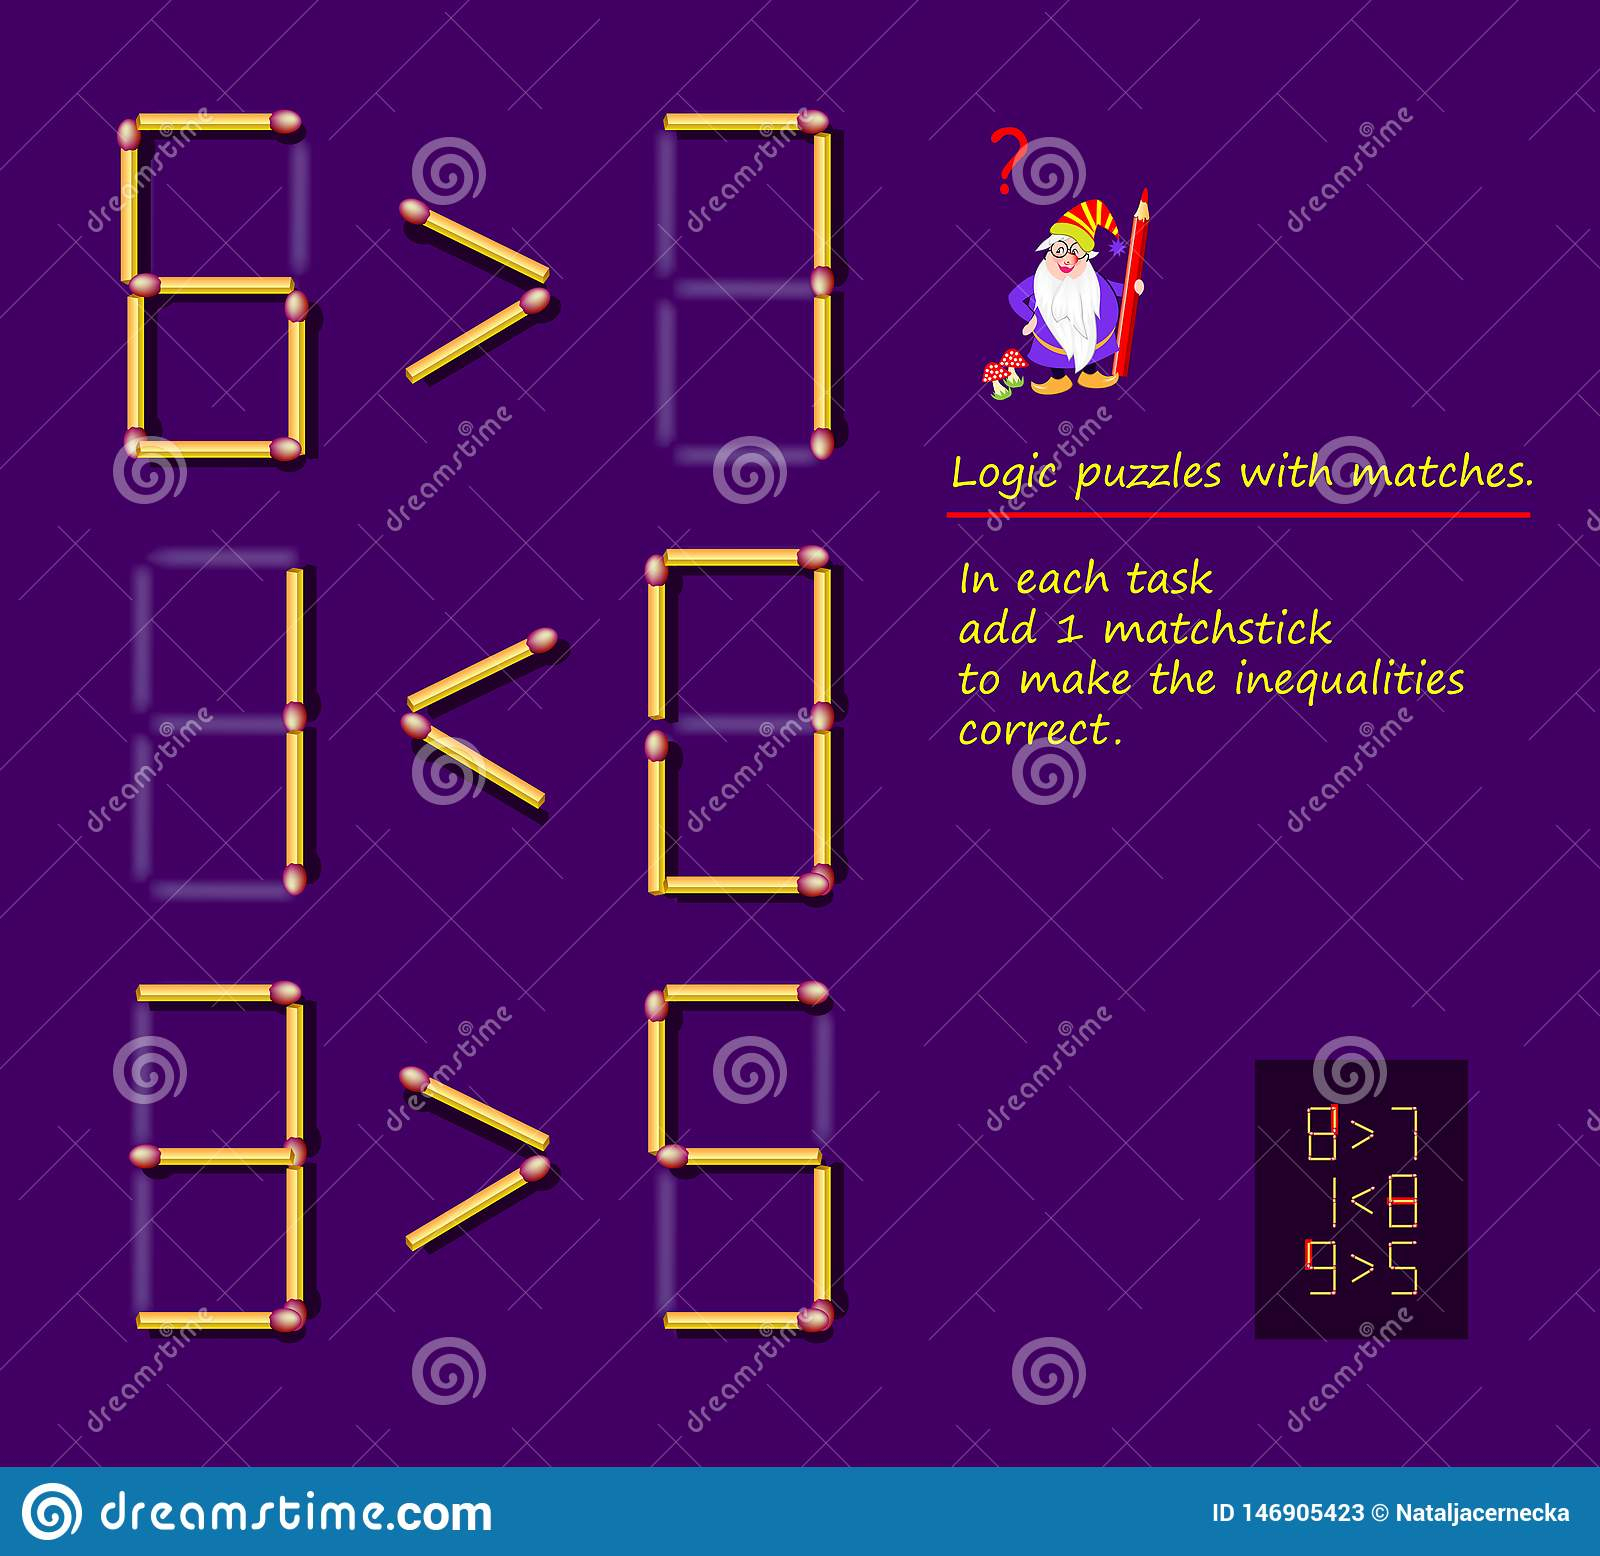 Logical Puzzle Game With Matches. In Each Task Add 1 Matchstick To - Printable Matchstick Puzzles